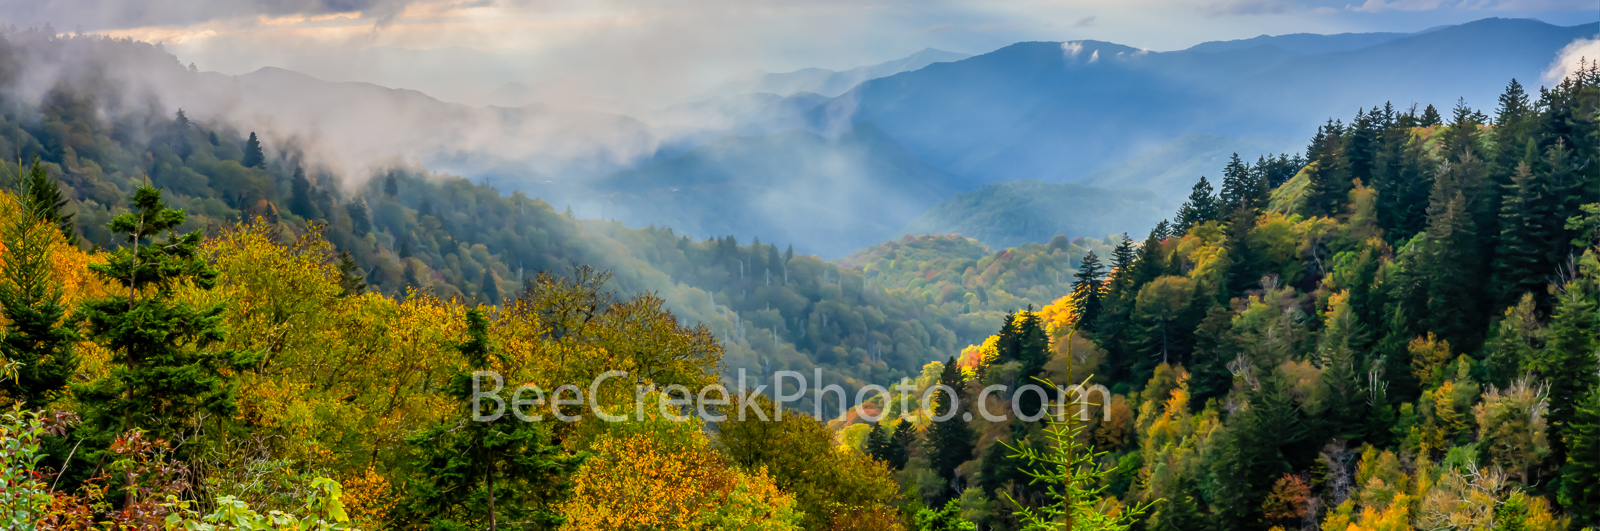 Smoky mountains, rays, fall foliage, autumn, clouds, sun rays, shine, forest, fog, blue ridge mountains, hills valleys, North Carolina, NC, Tenessee, TN, Applachian,Applachian mountains, blue ridge, m, photo